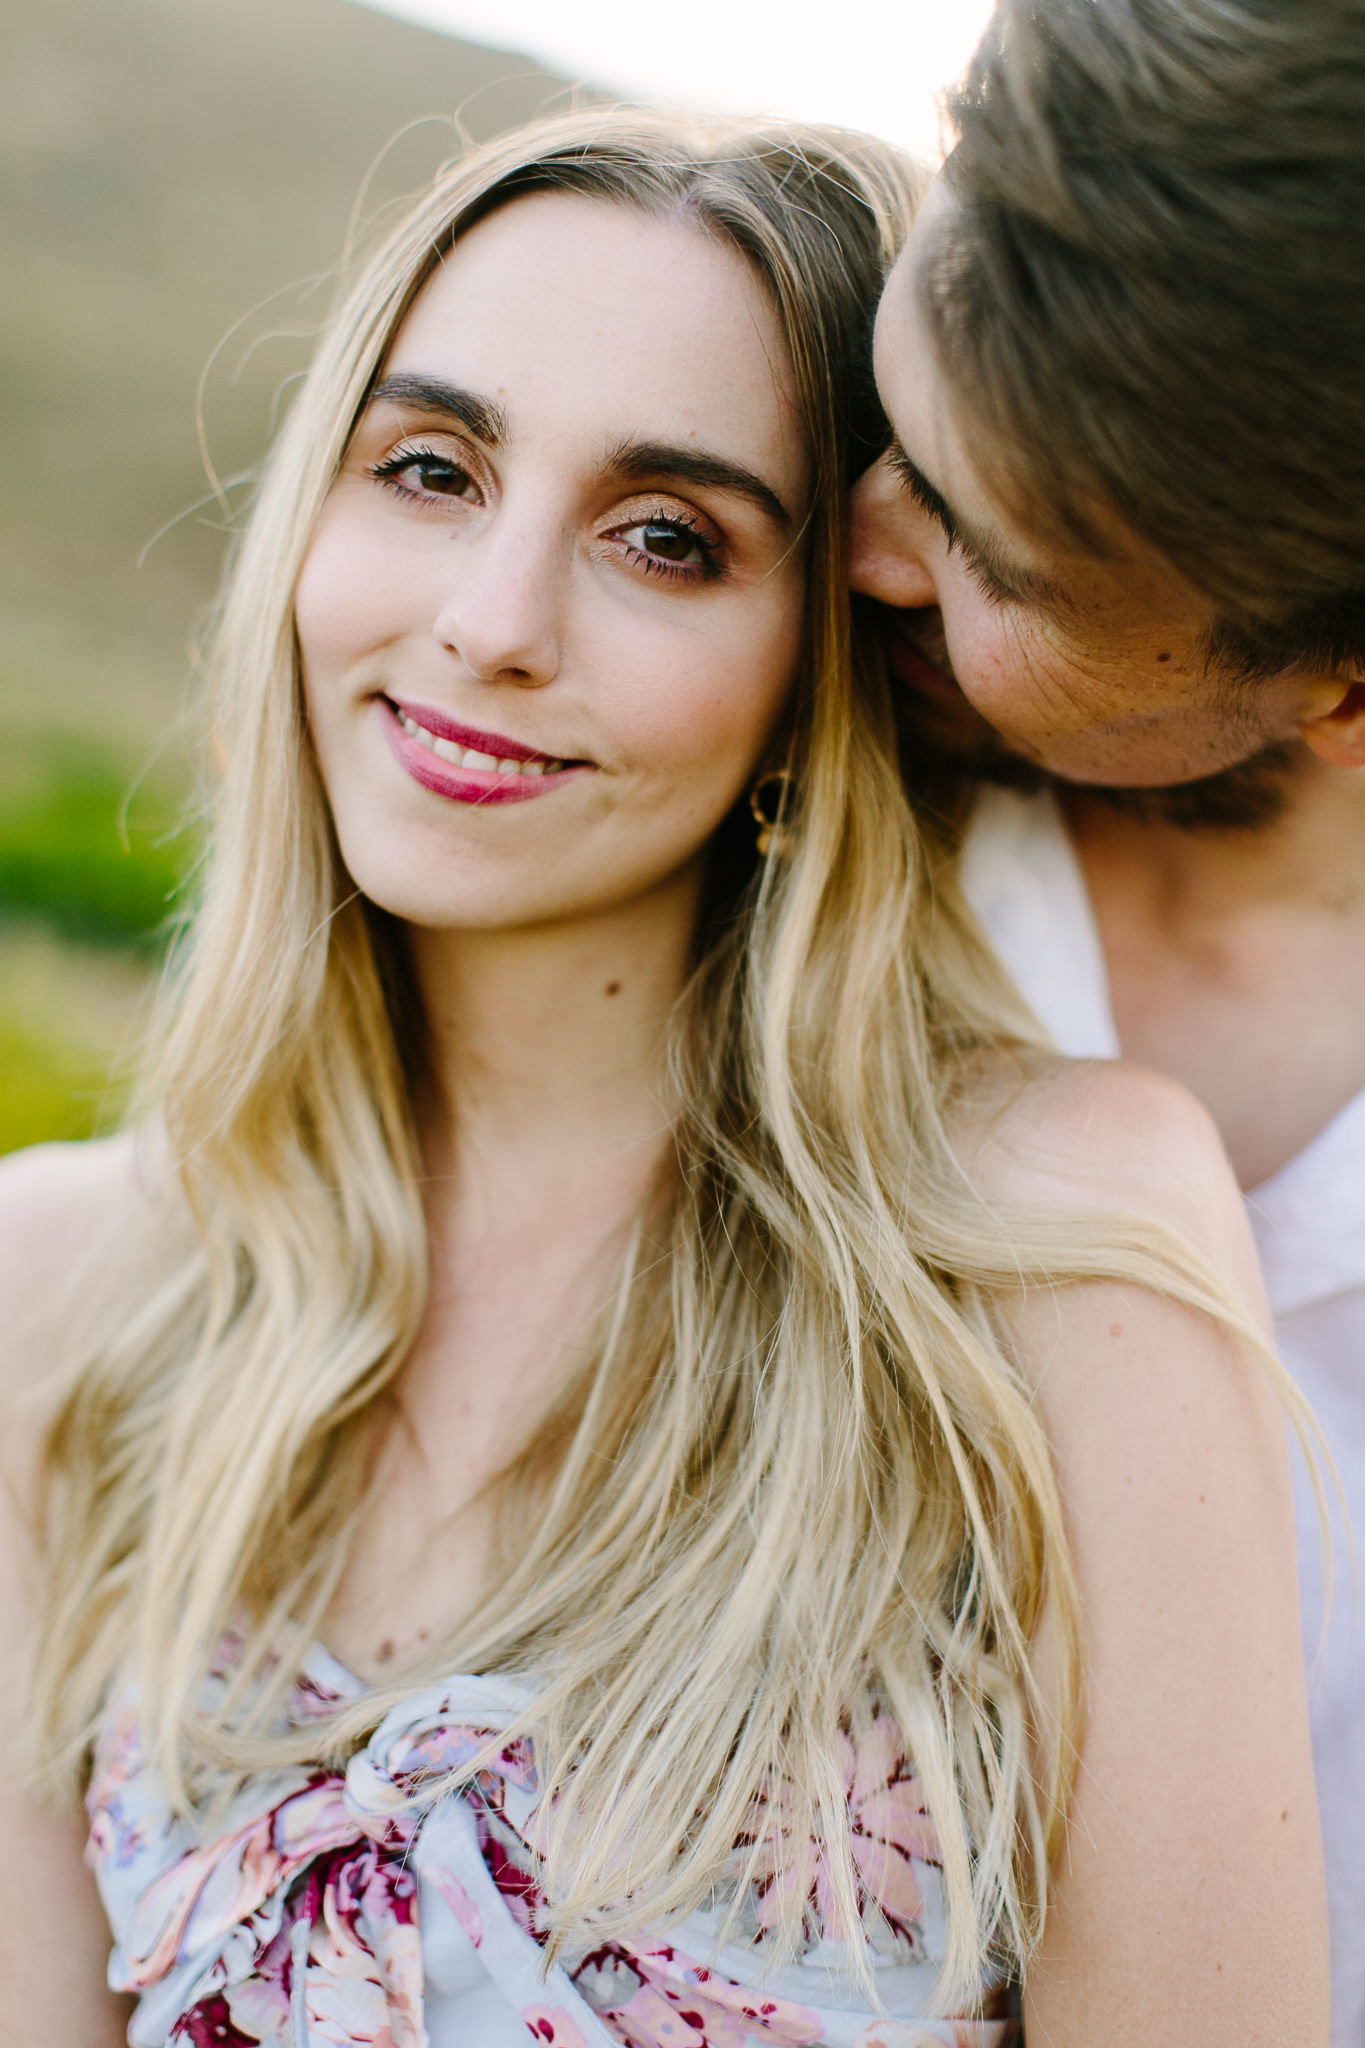 Julia_Winkler_Photography_Couple_Shoot-5